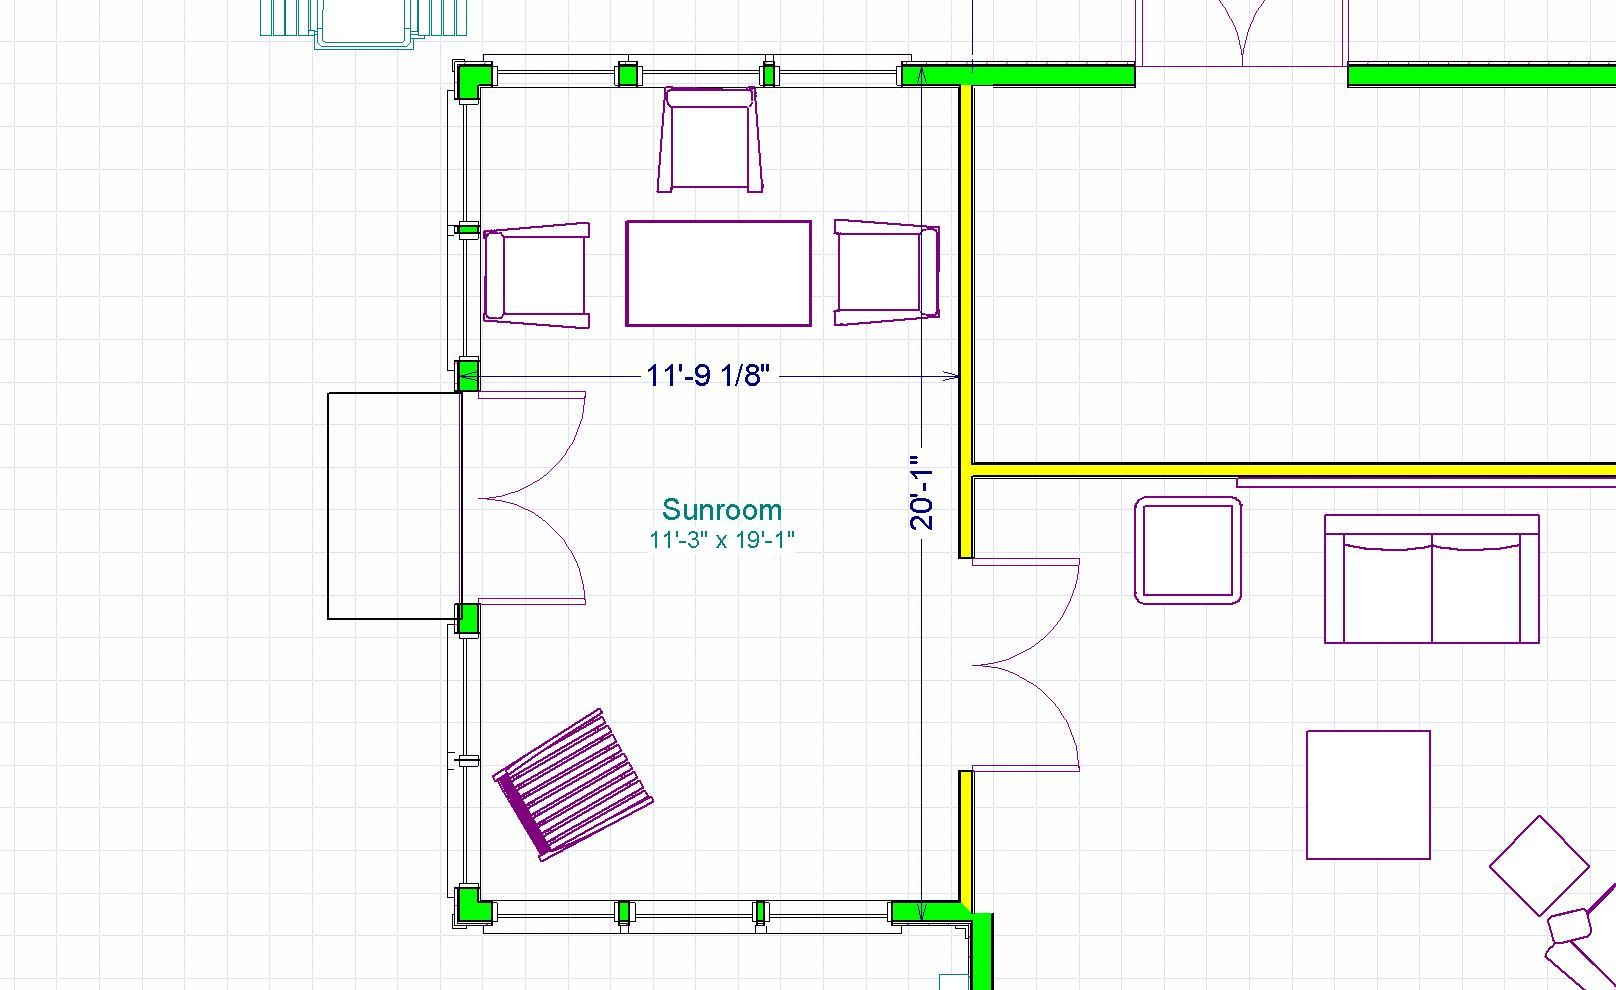 One Room Home Addition Plans Our Rising Phoenix Sunroom Addition Takes Full Advantage Of A 180 Home Addition Plans Sunroom Addition Room Addition Plans